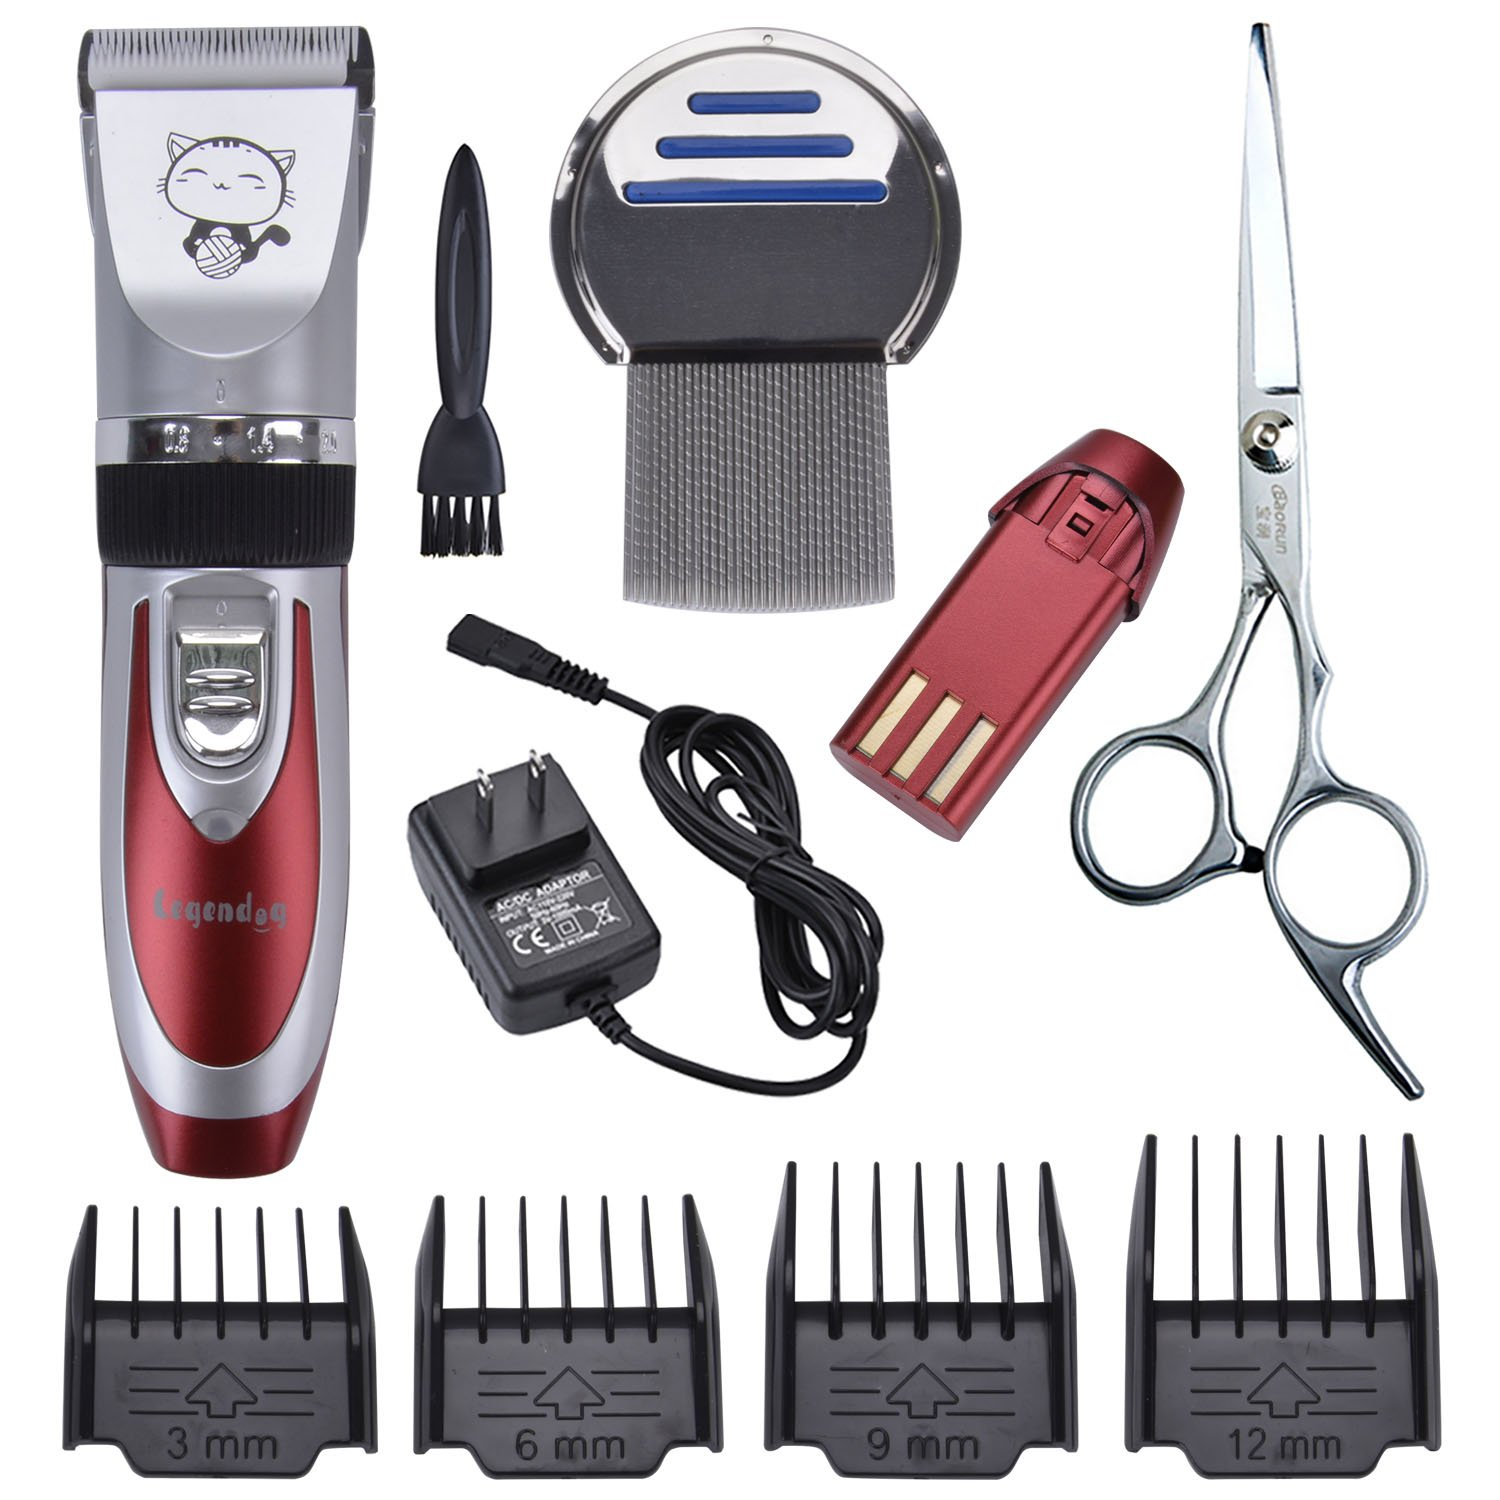 Red 33 teeth Pet Grooming Clippers,Legendog Cordless Rechargeable Electric Low Noise Grooming Clippers Kit for Cats (2 Batteries, Steel Comb and Scissors)